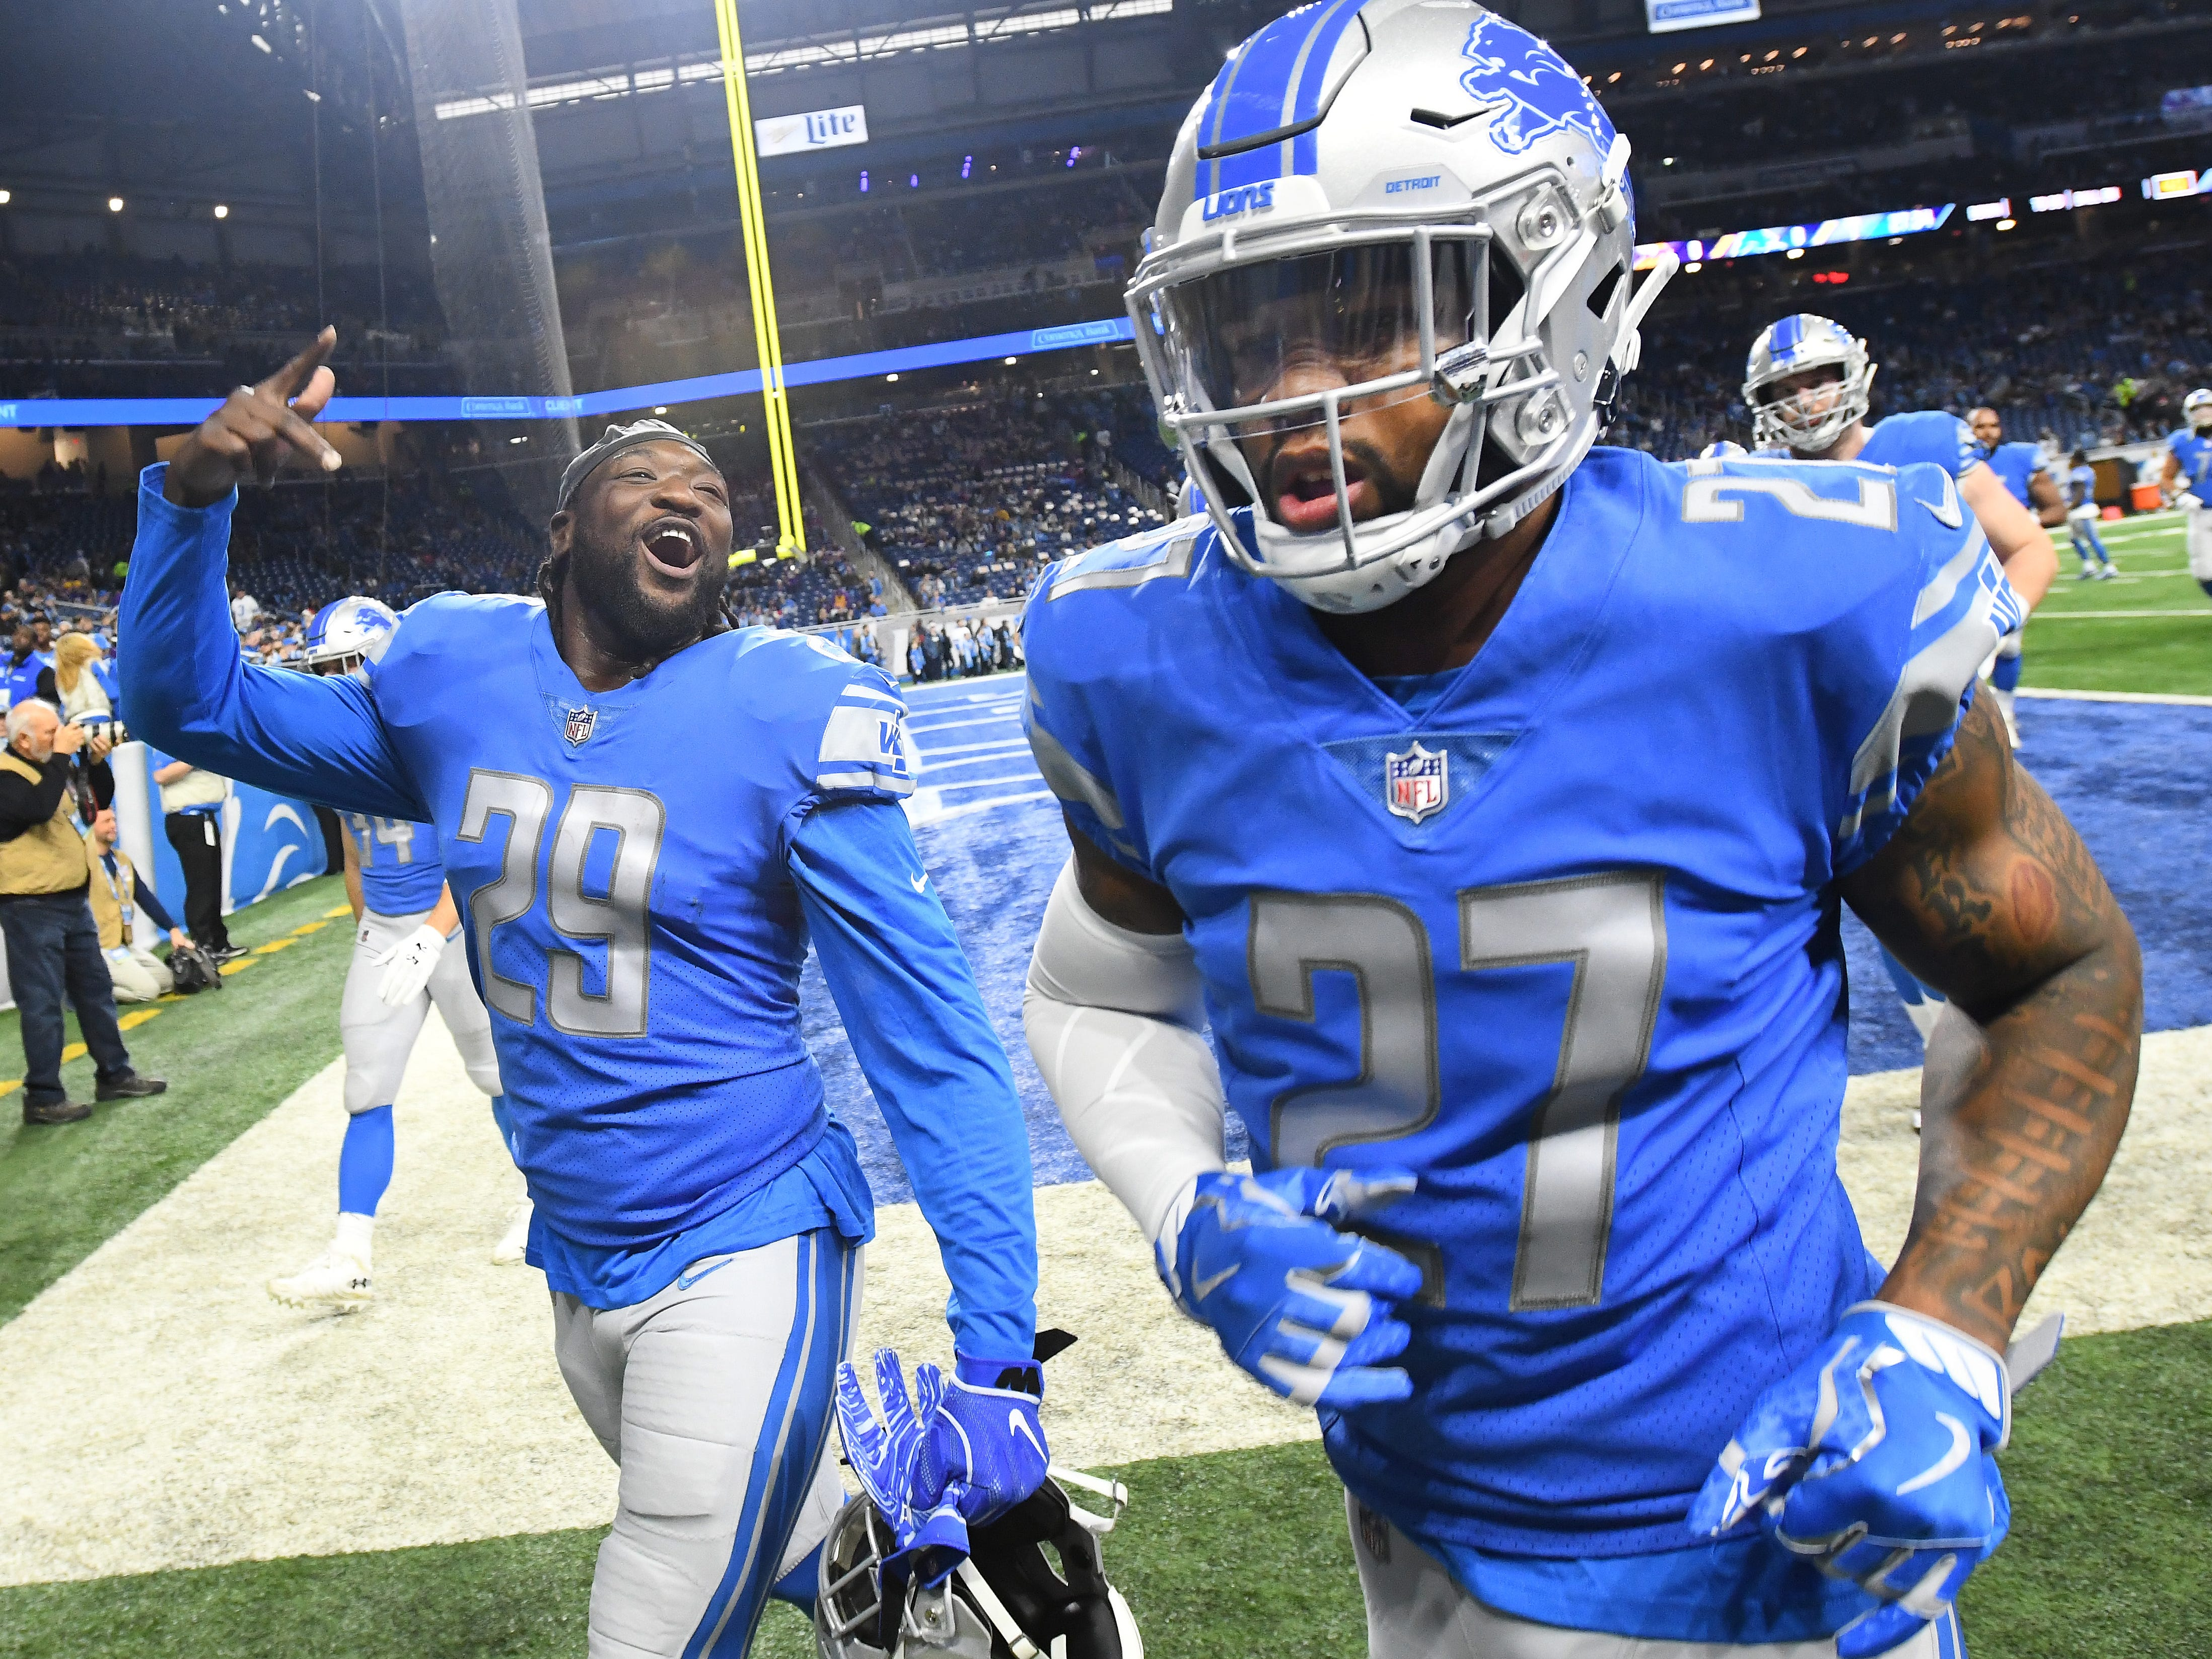 Lions running back LeGarrette Blount and safety Glover Quin leave the field after warmups.